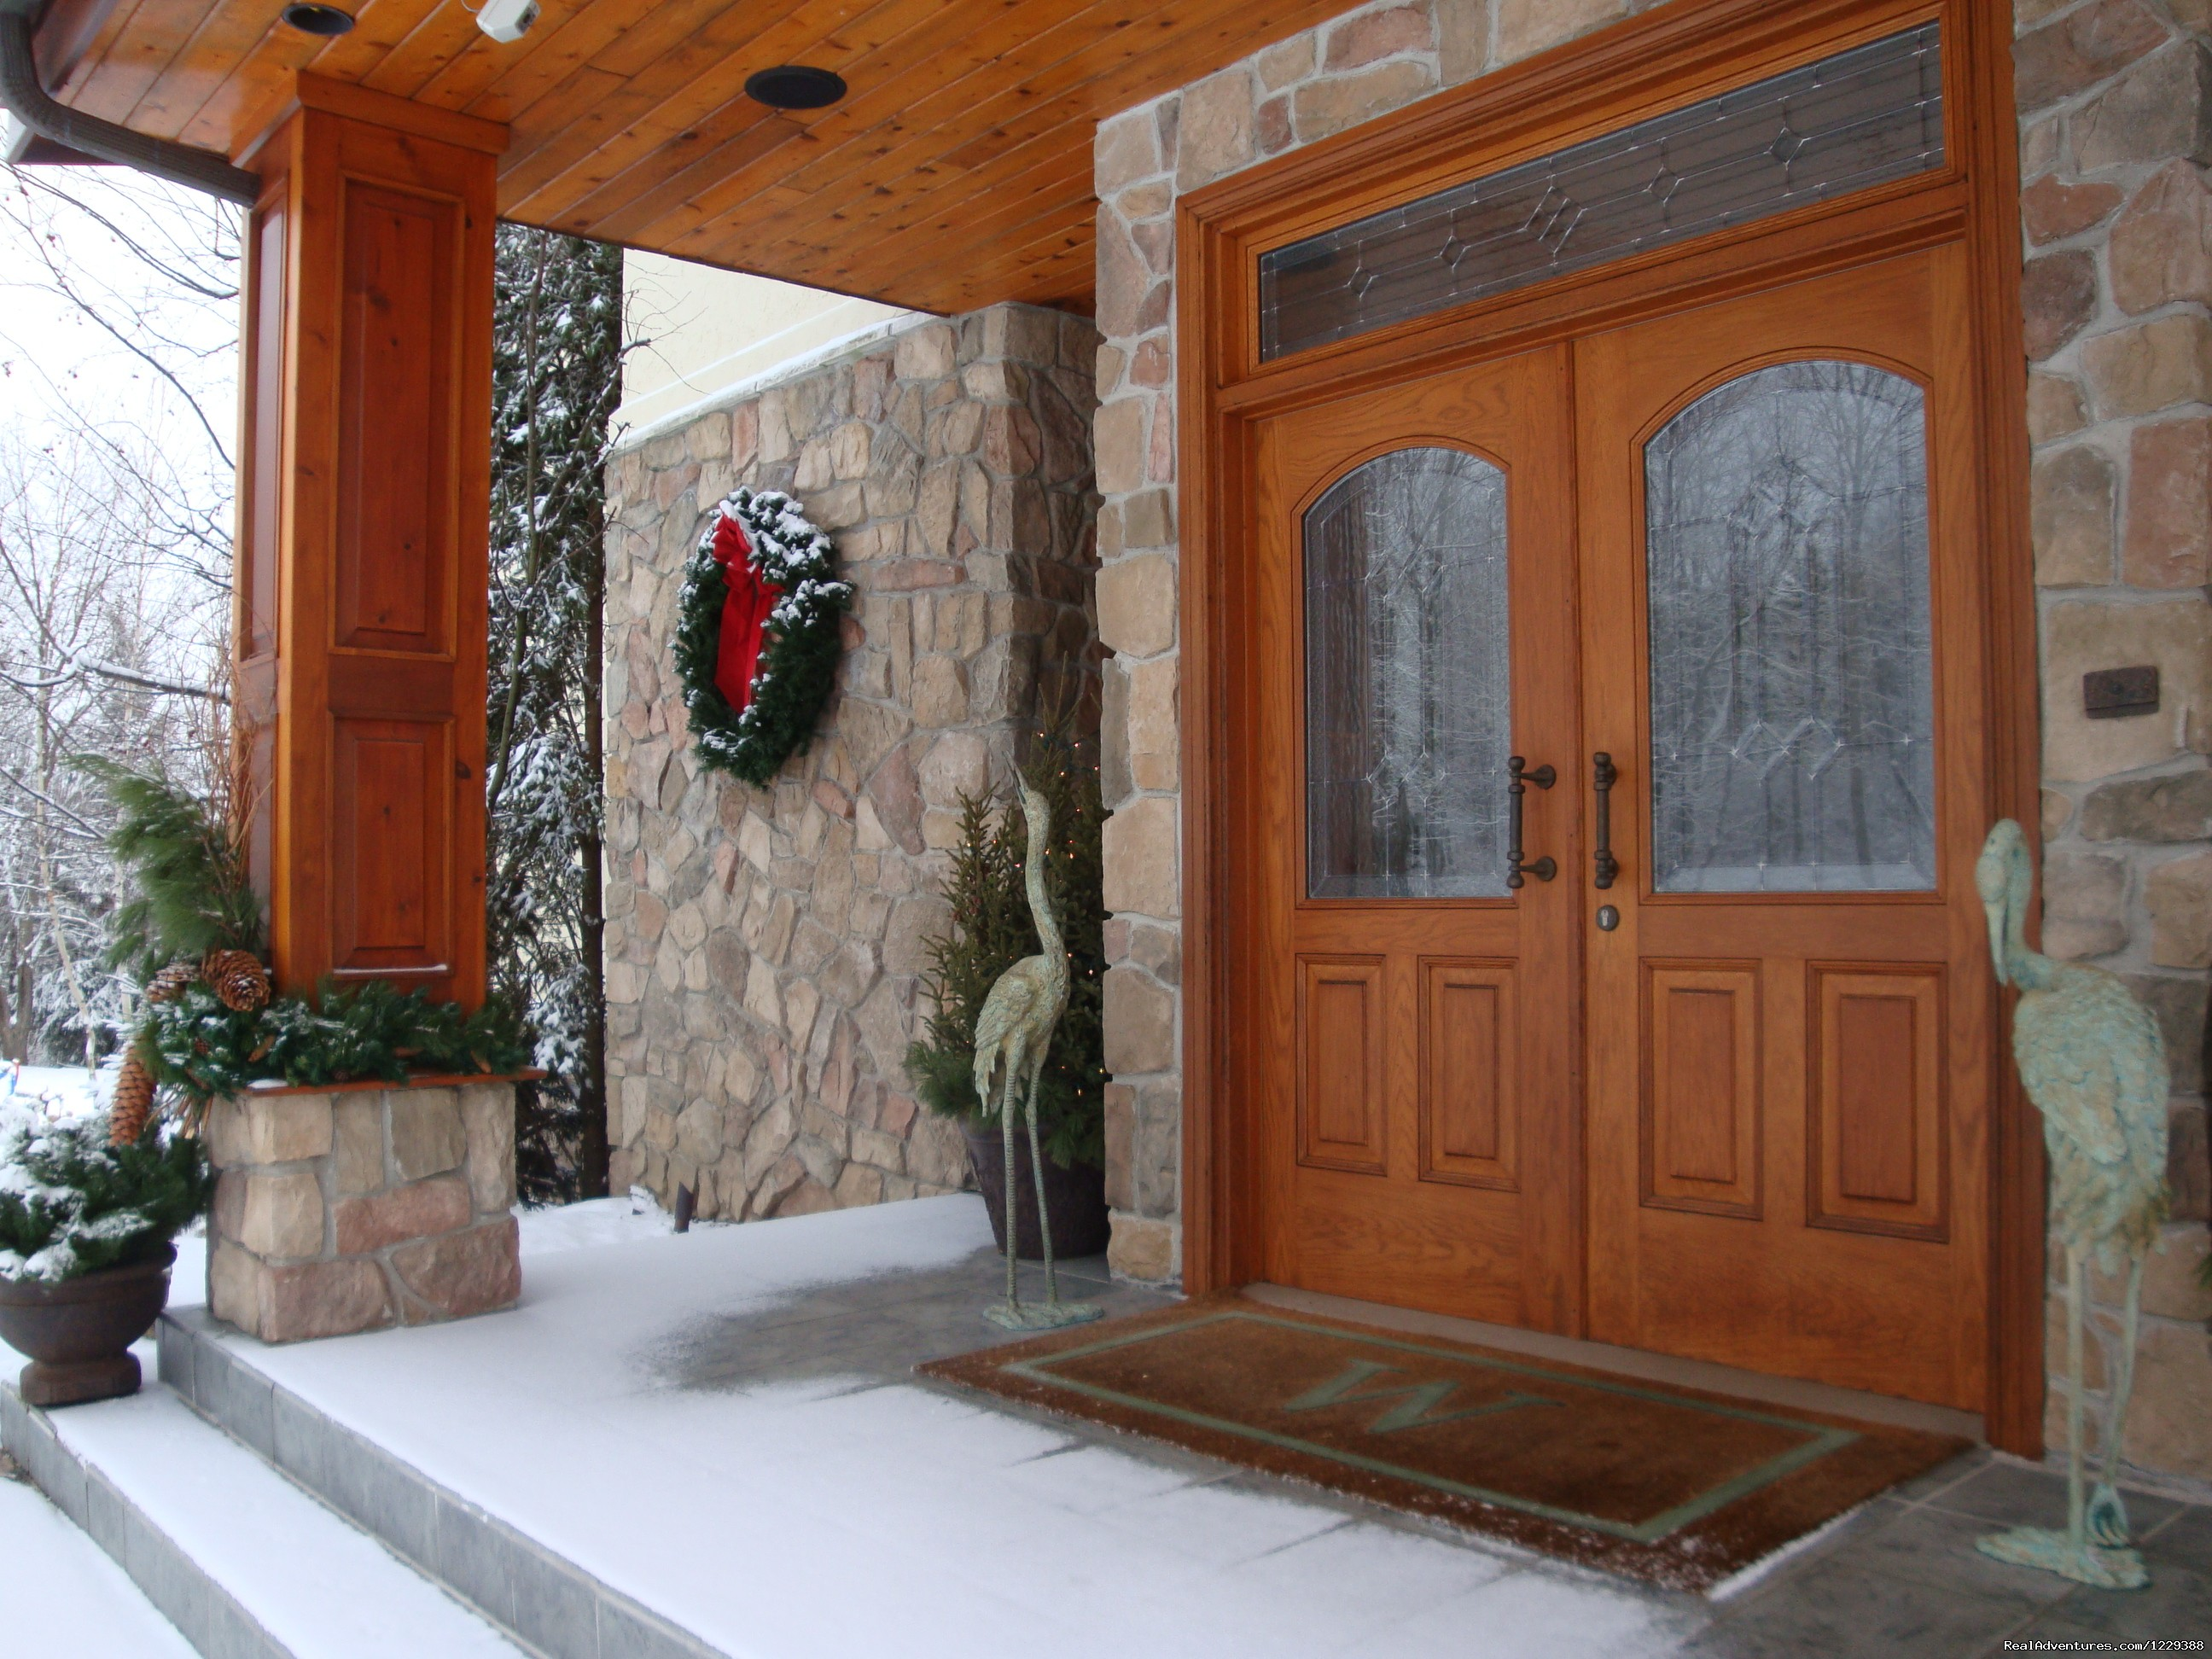 Snowy Front Entrance